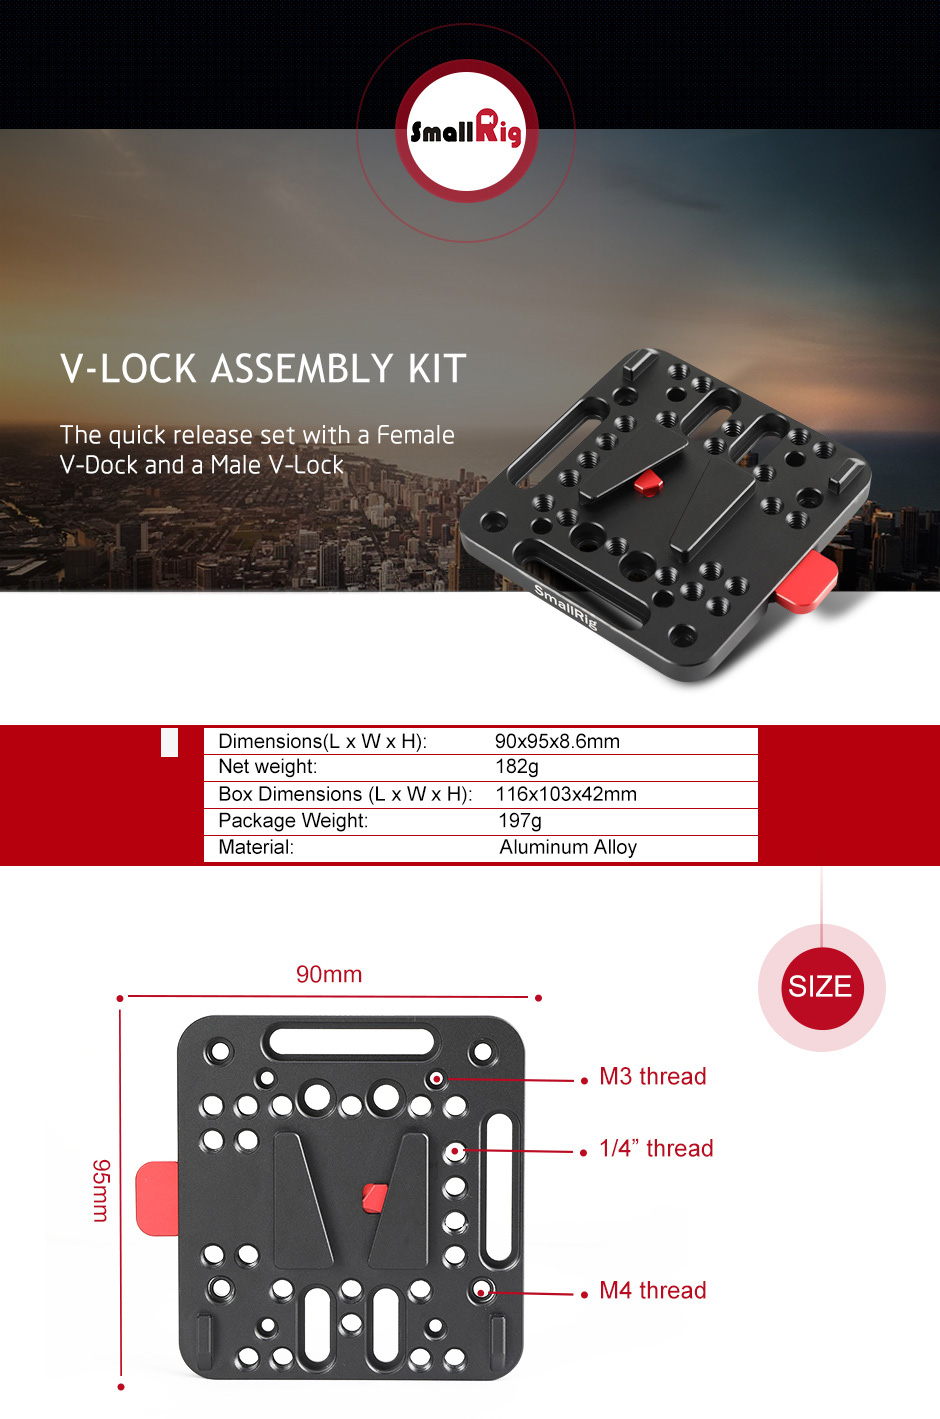 v-lock assembly kit 1846